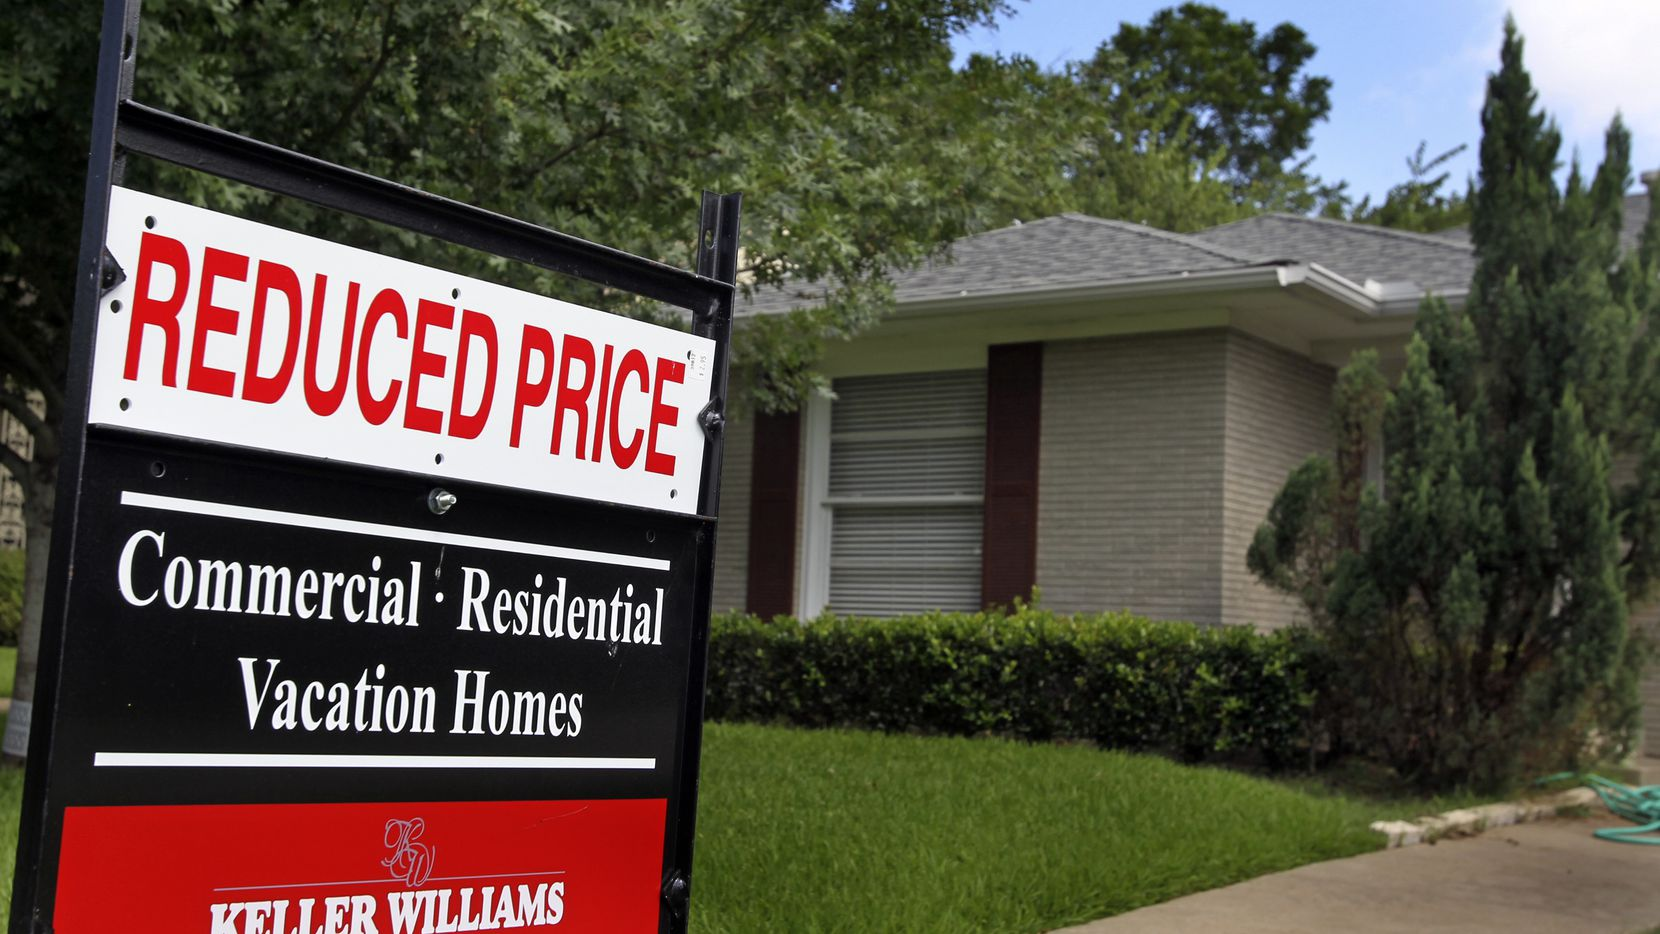 Dallas-area home prices were up by just 2.1% from a year ago in May, according to CoreLogic.